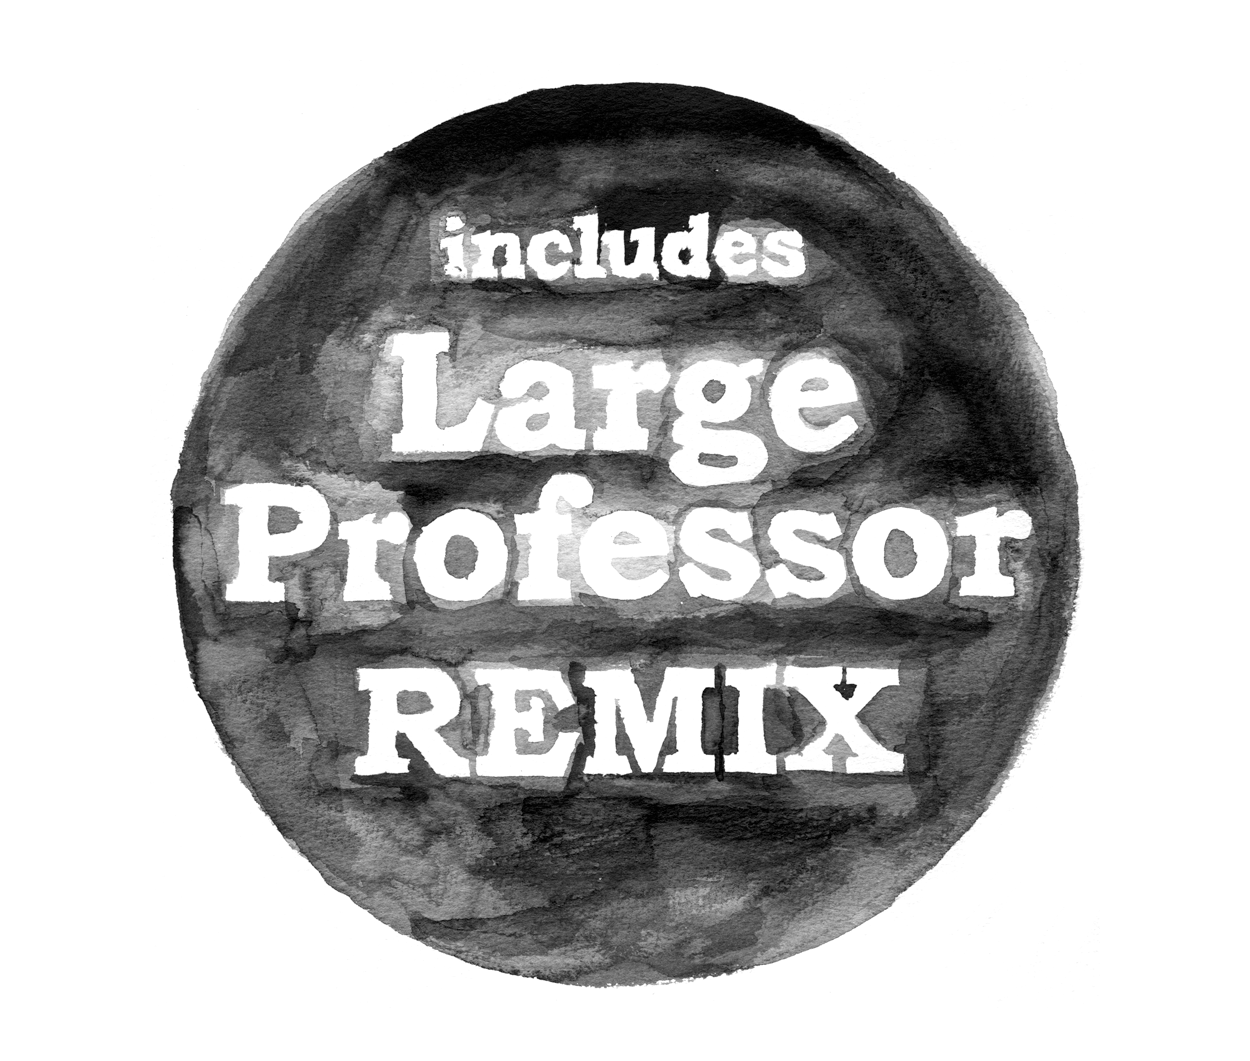 includes Large Professor REMIX